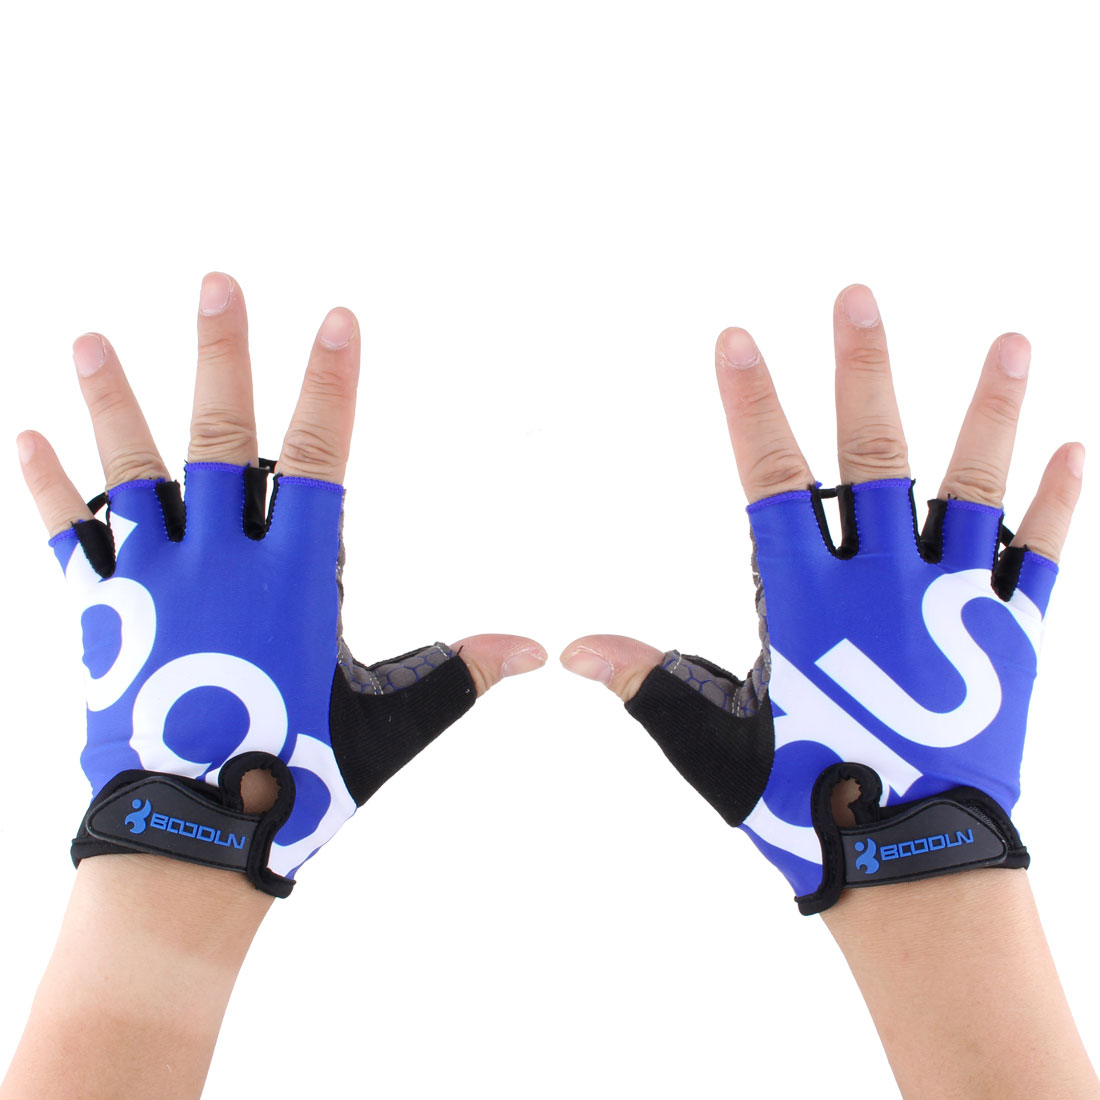 BOODUN Authorized Unisex Outdoor Sports Cycling Biking Exercise Adjustable Fitness Half Finger Gloves Blue XL Size Pair